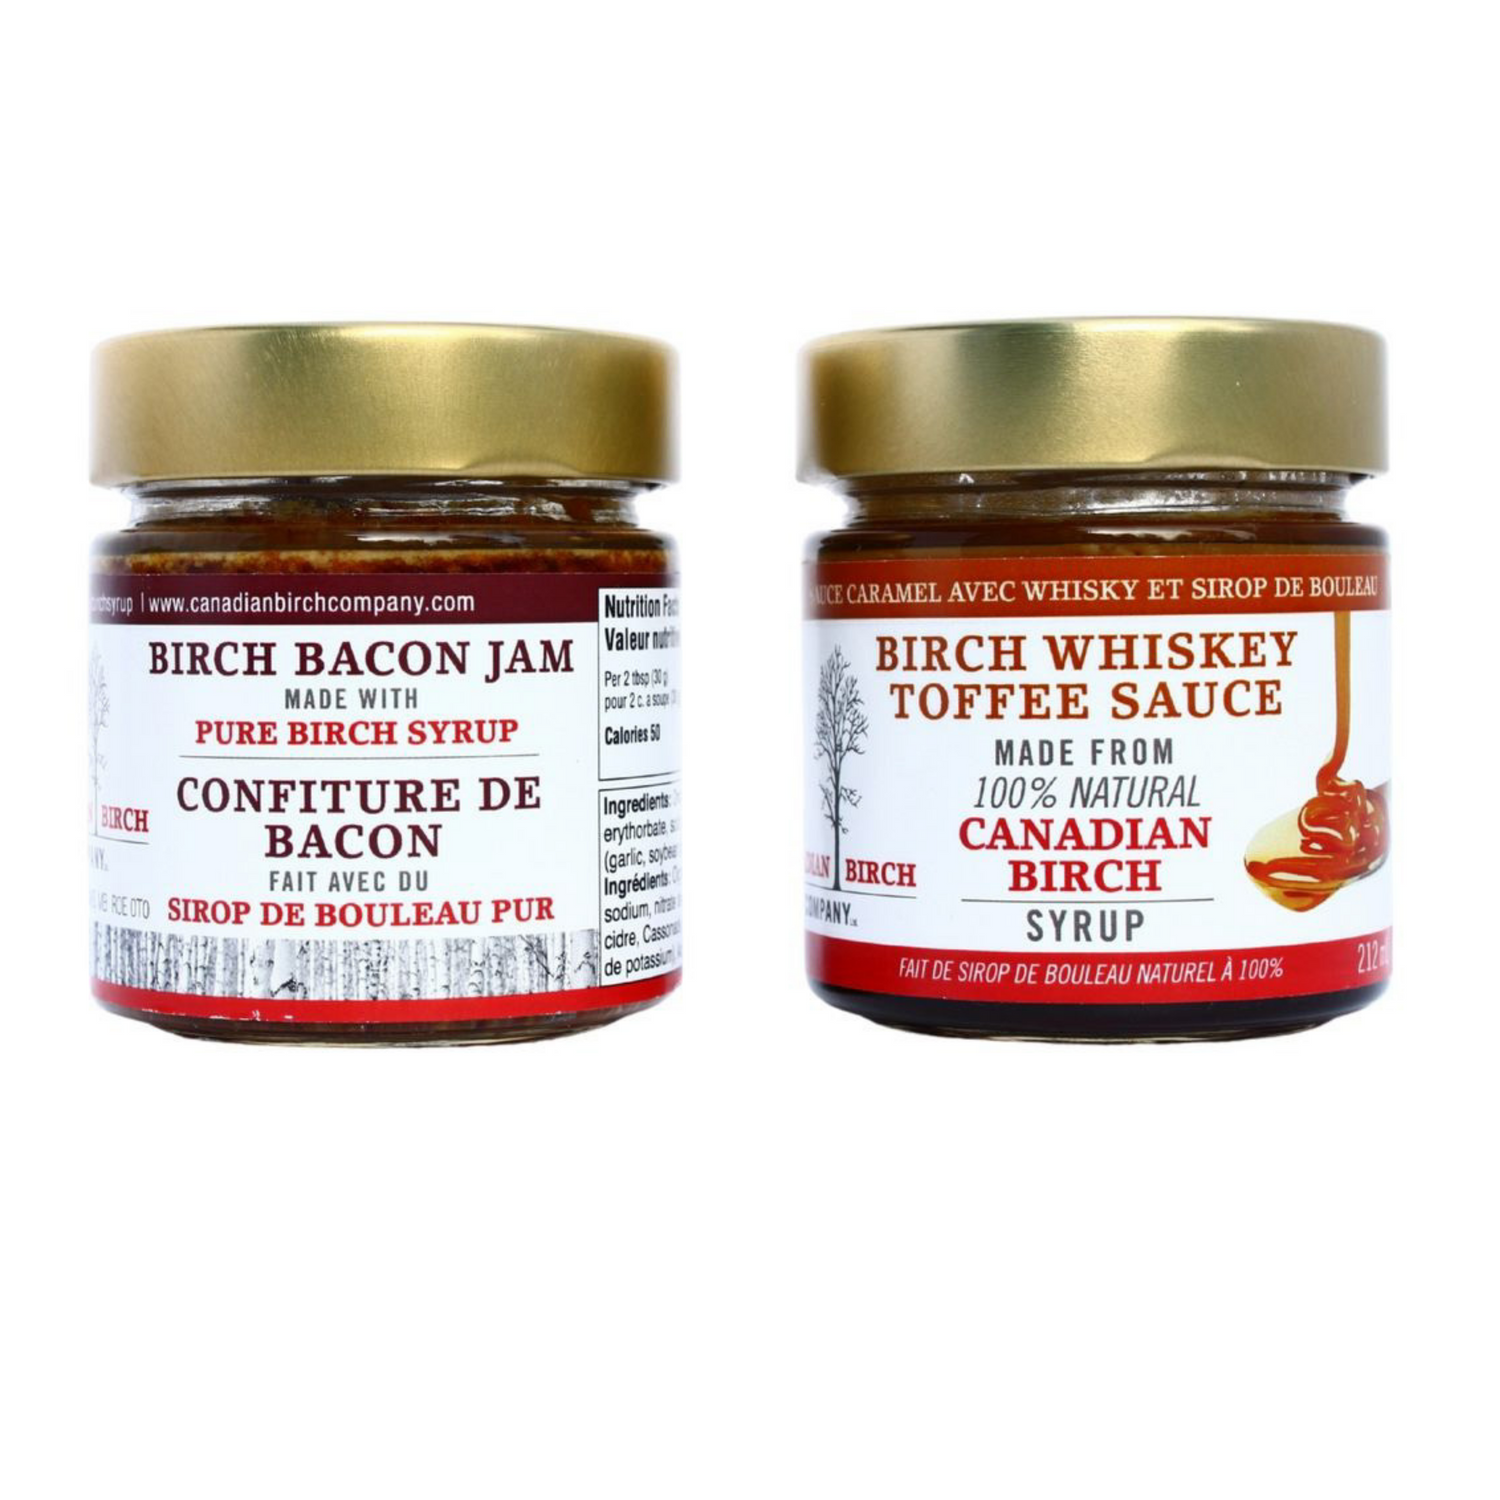 Pictured together, Birch Bacon jam and Birch Whiskey Toffee sauce in their signature jars with gold colored lids. Basic product shot against a white background